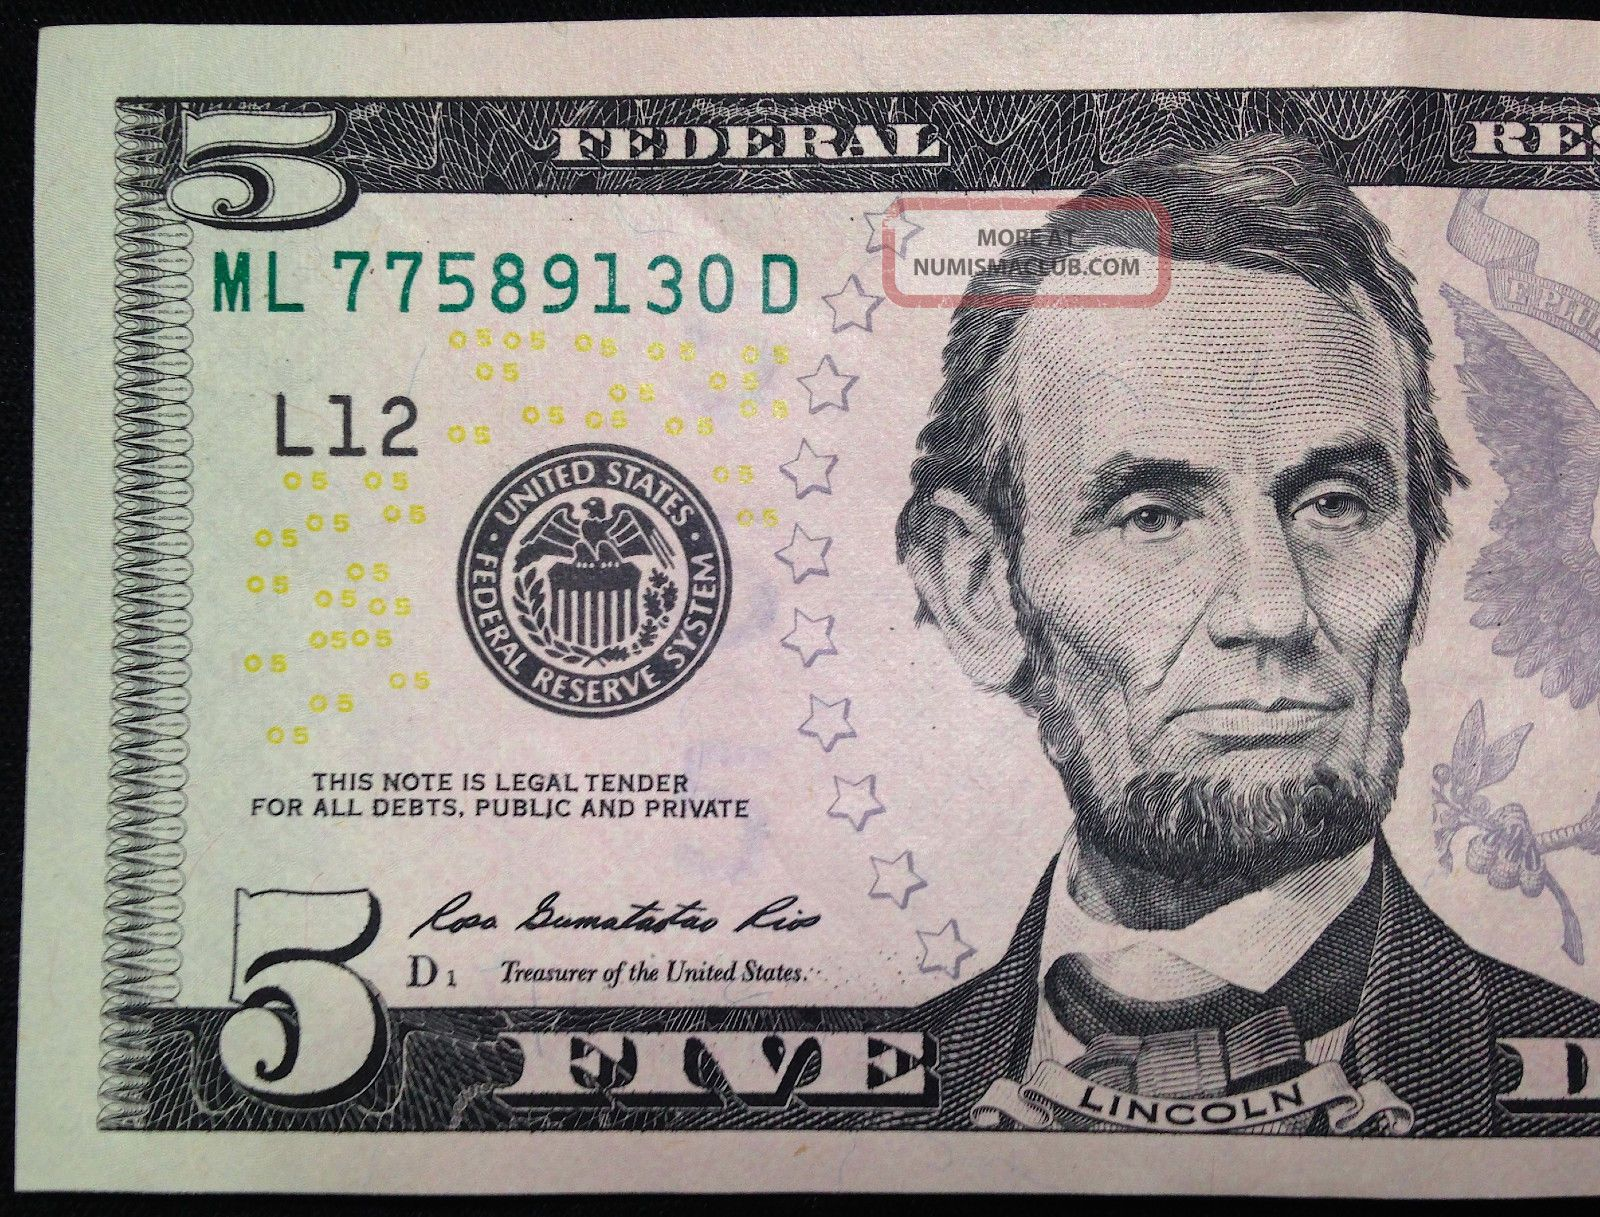 2013 $5 Five Dollar Bill, Uncirculated Us Currency Note, Frb L San